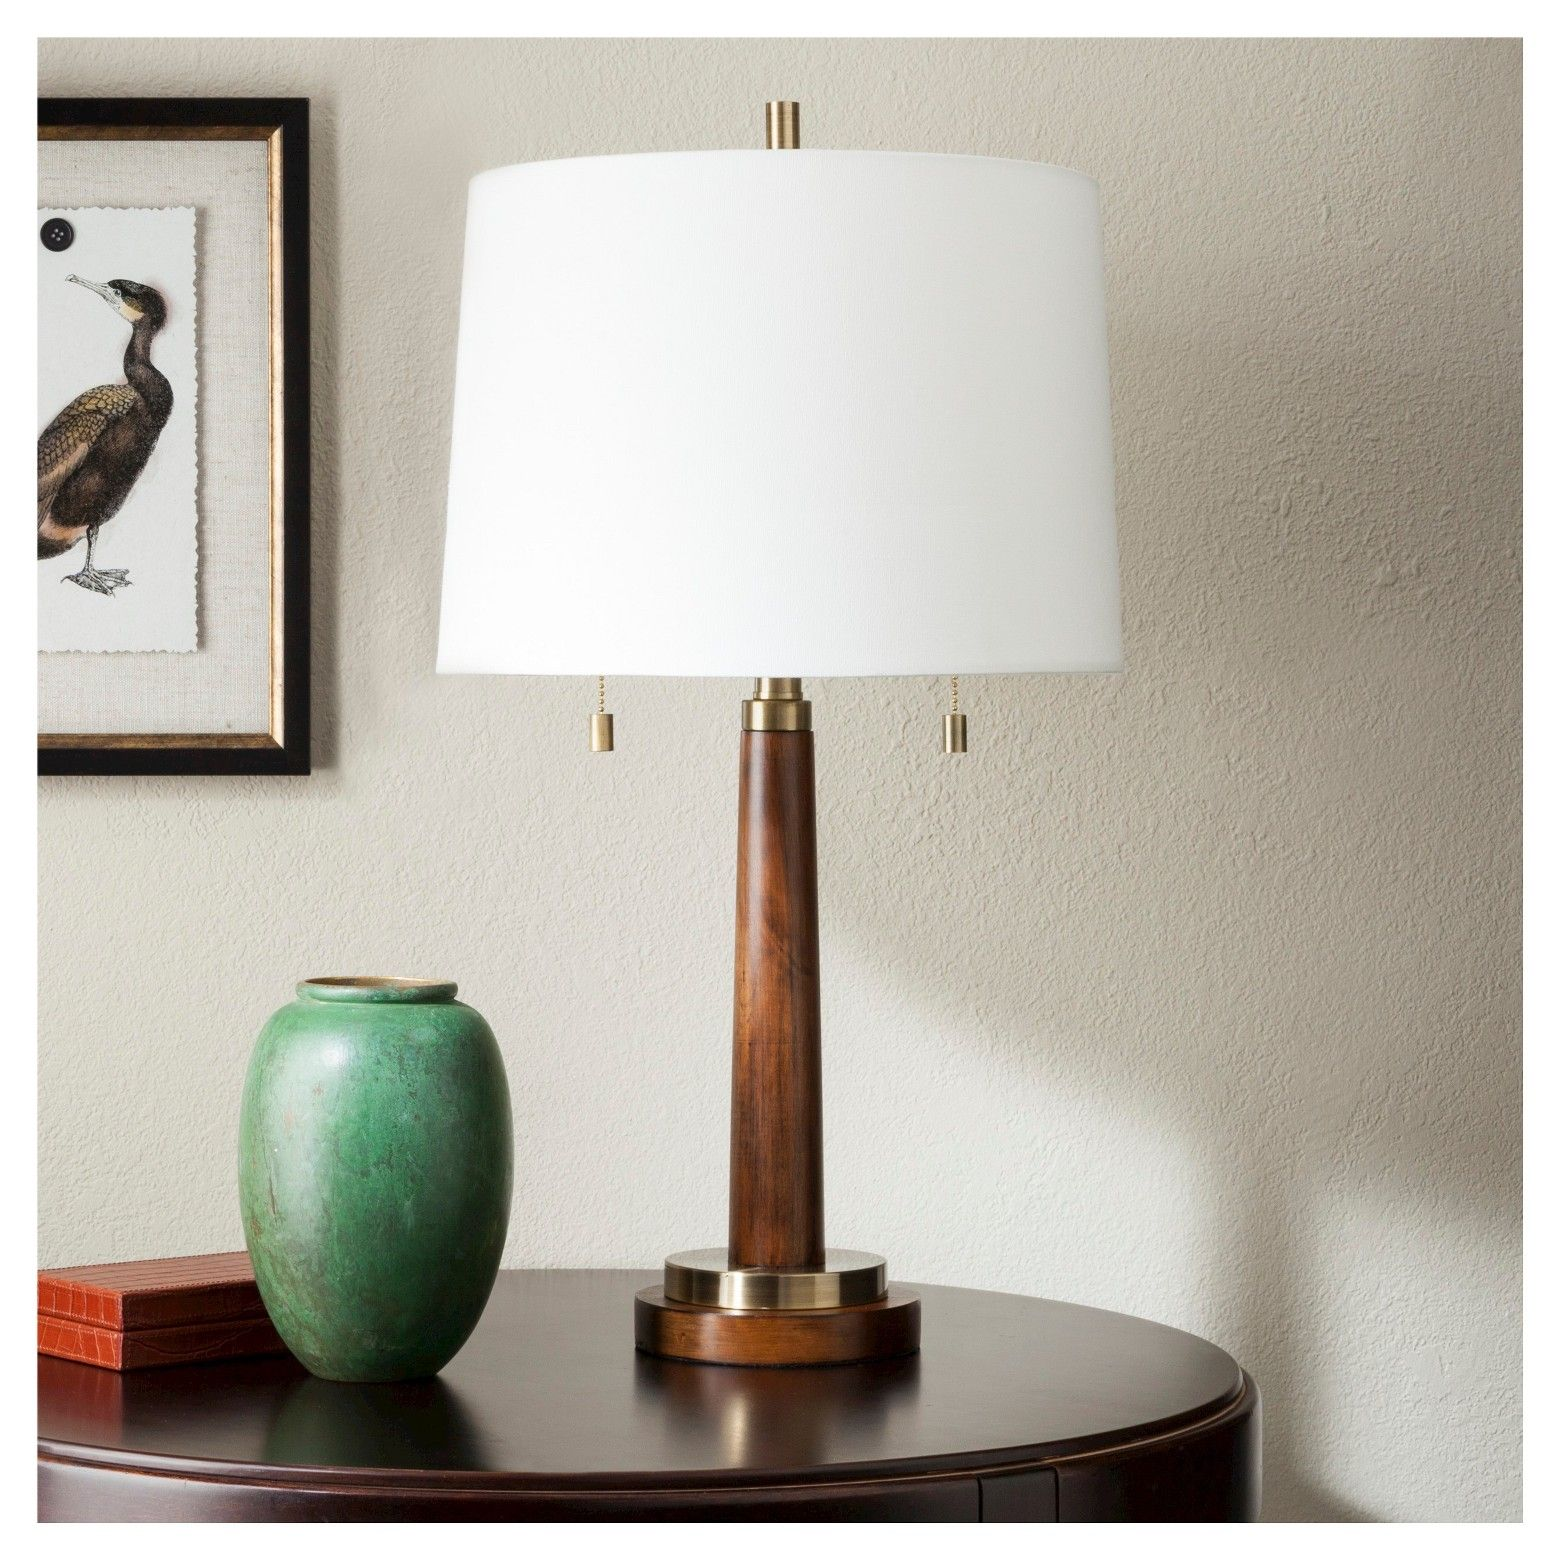 franklin table lamp wood with brass trim threshold brown white rh pinterest com